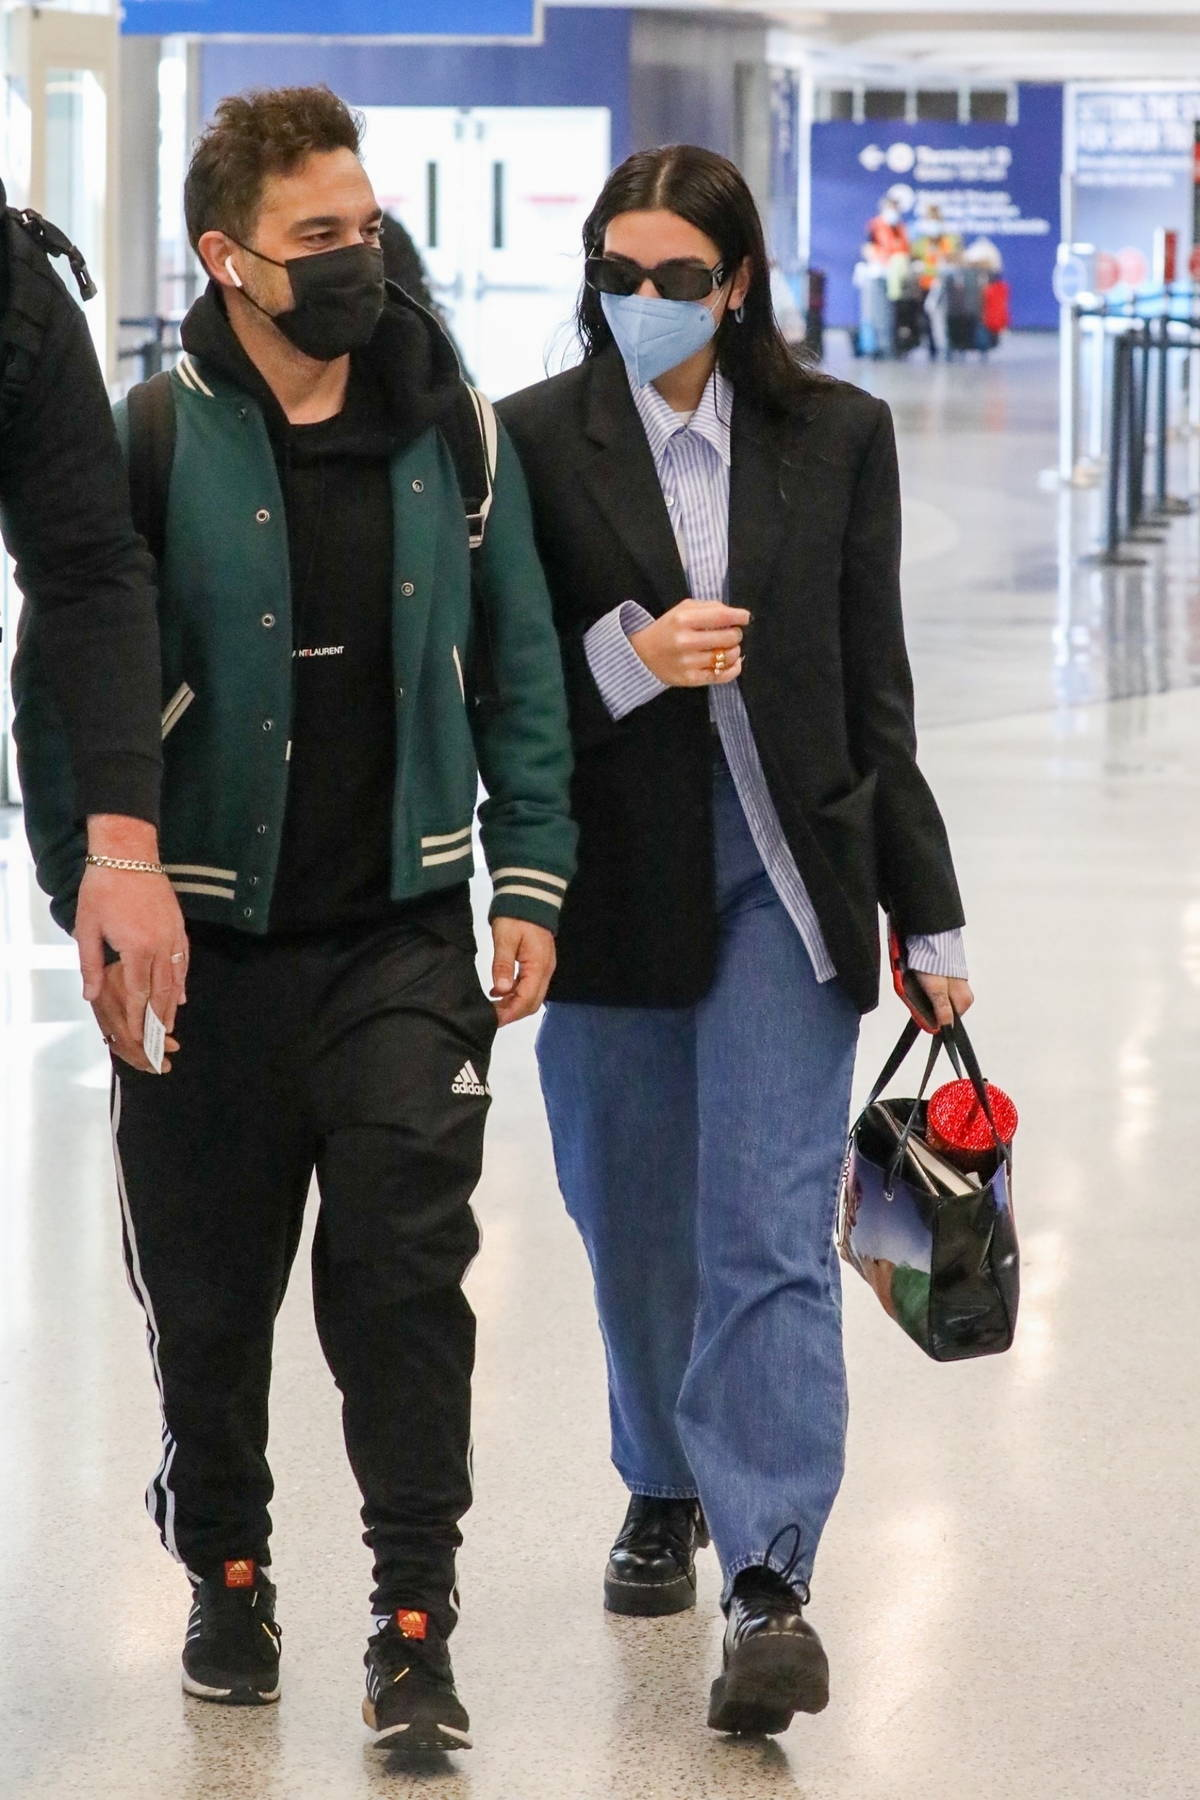 Dua Lipa looks sharp in a black blazer and jeans as she arrives for a flight out of LAX airport in Los Angeles